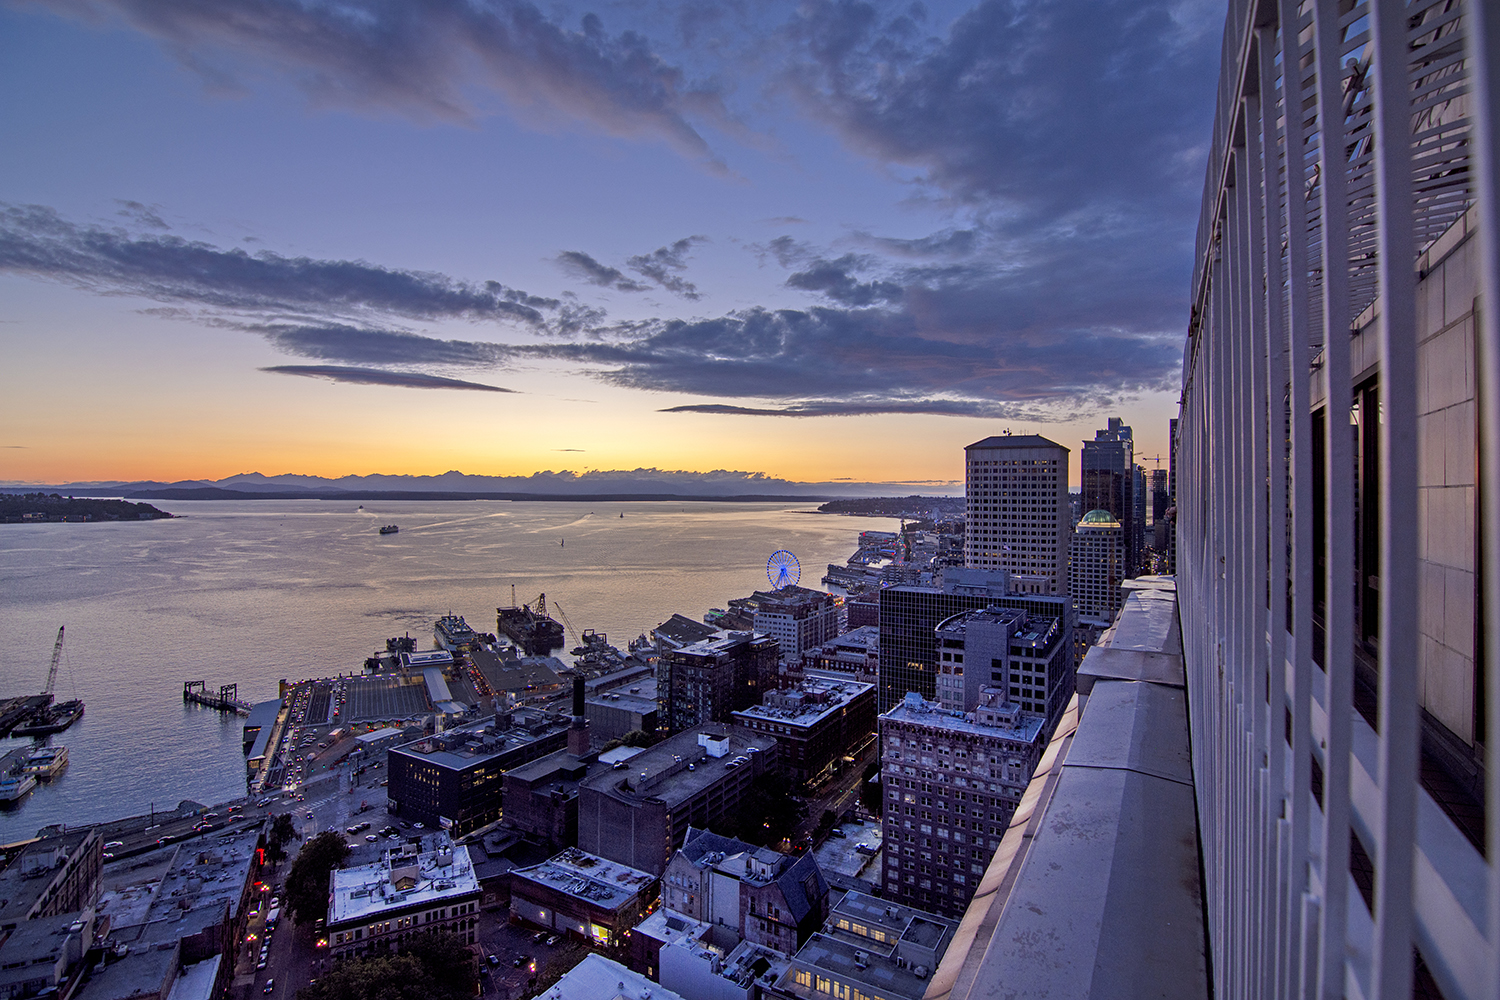 The sunset views are nearly unbeatable from the Smith Tower Observatory and Bar. In fact, many locals argue the scenic views from this historic skyscraper rivals that of its popular next door neighbors. (Image: Rachael Jones / Seattle Refined)